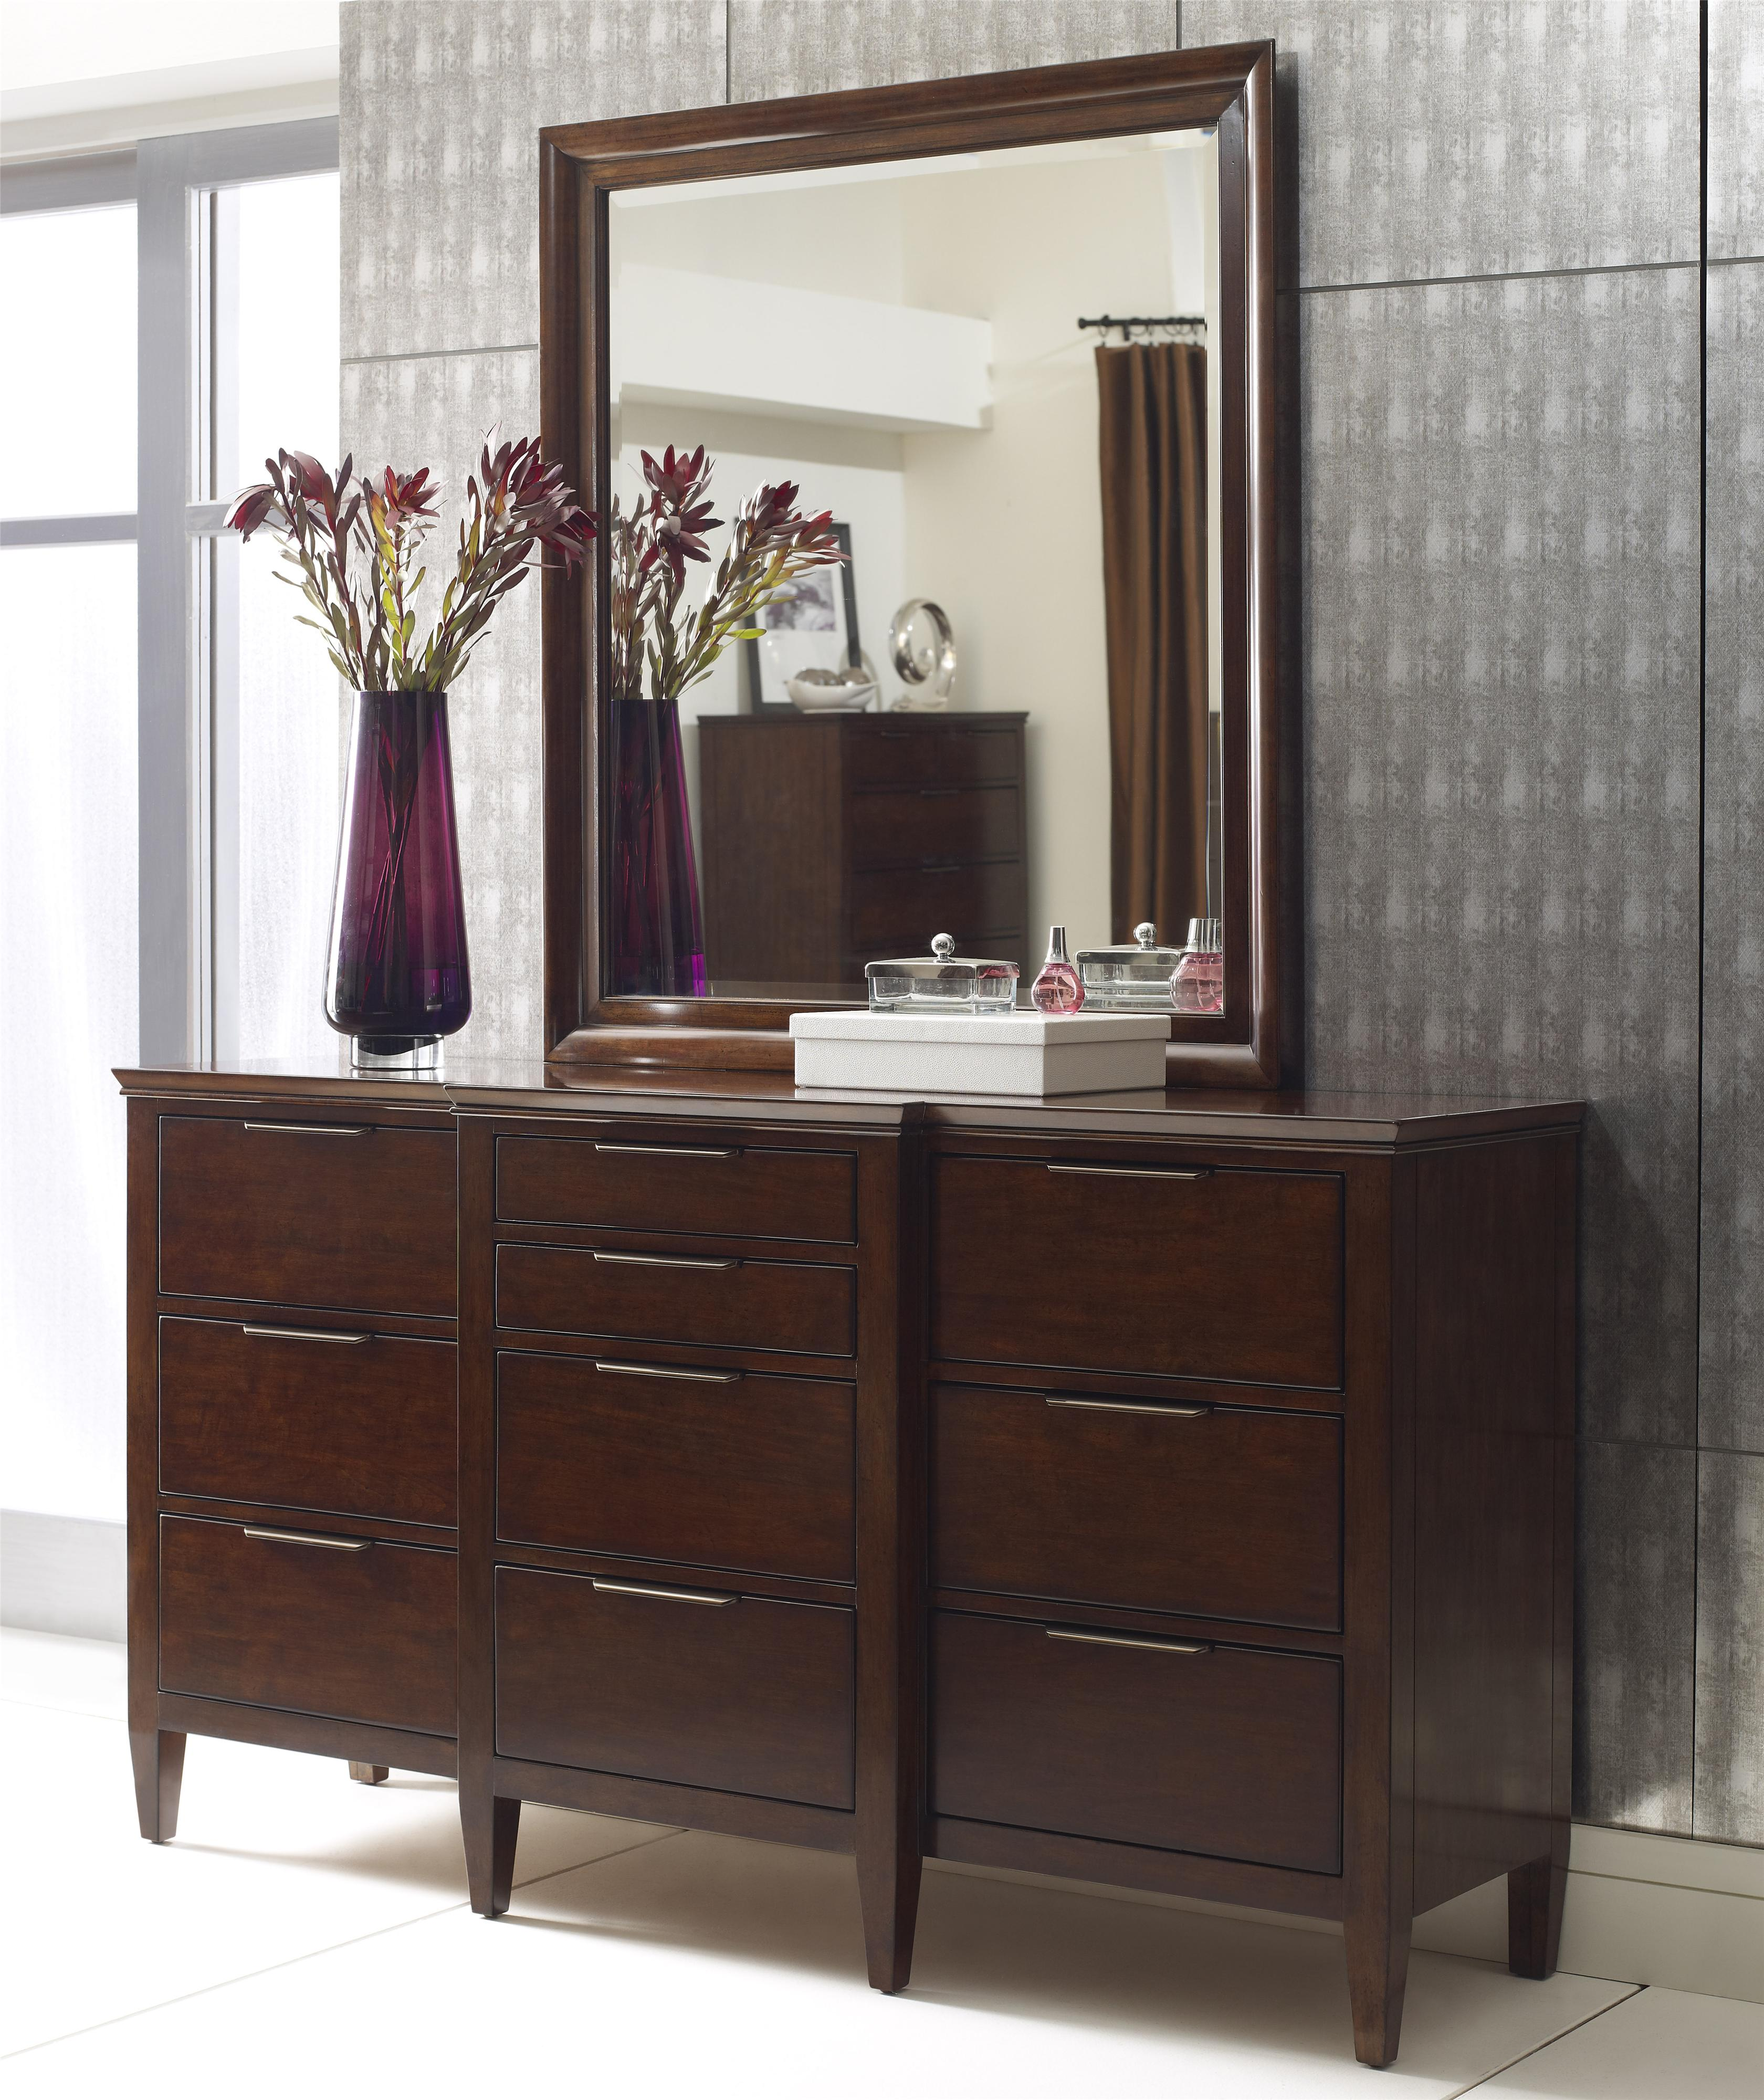 Elise Bristow Dresser and Mirror Set by Kincaid Furniture at Stuckey Furniture